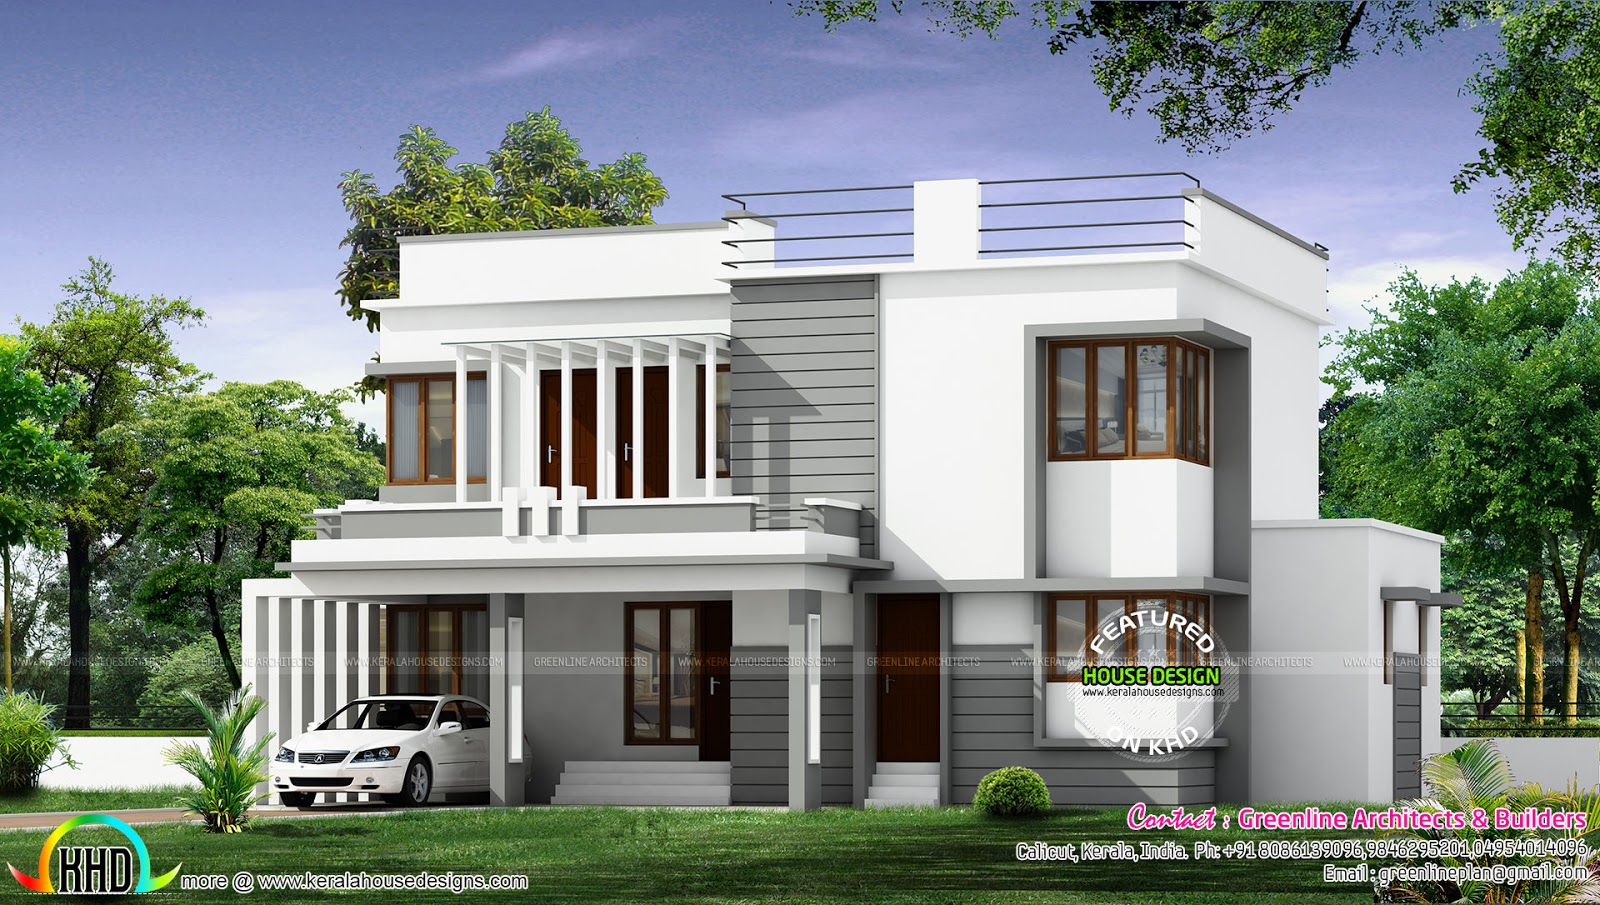 New modern house architecture kerala home design and Types of modern houses